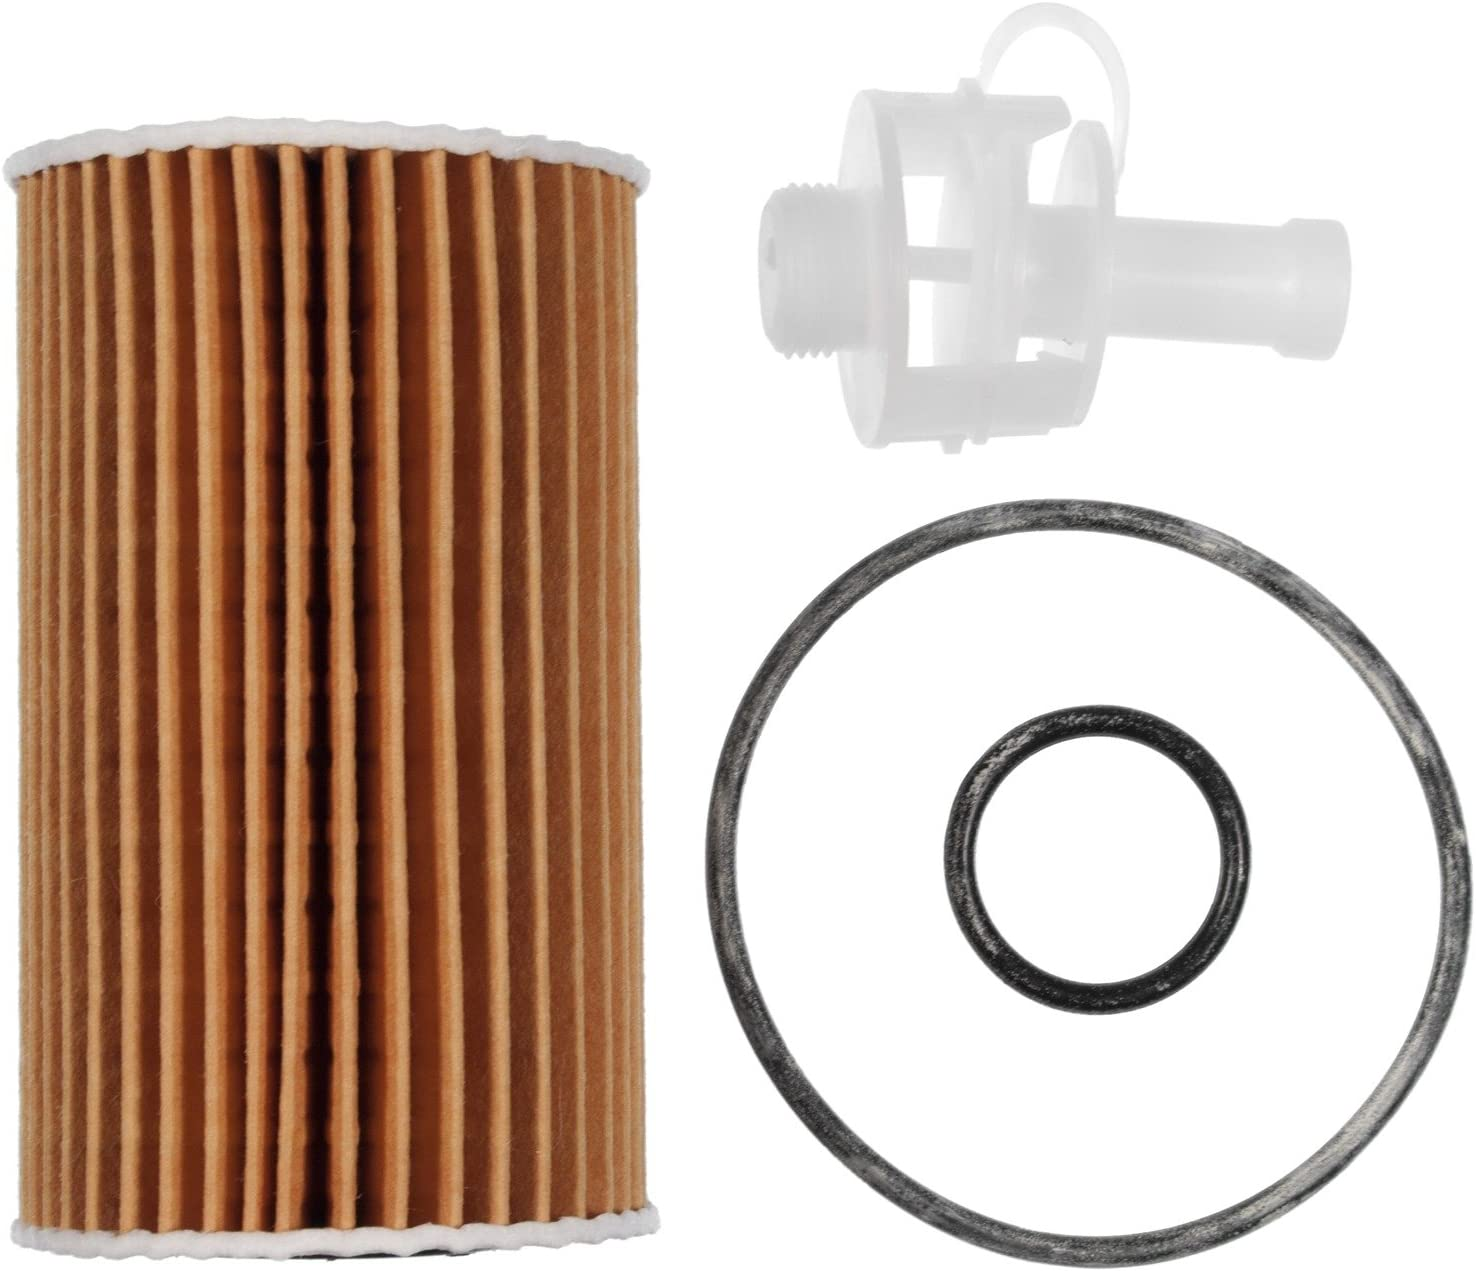 MAHLE Original OX 554D2 ECO Oil Filter